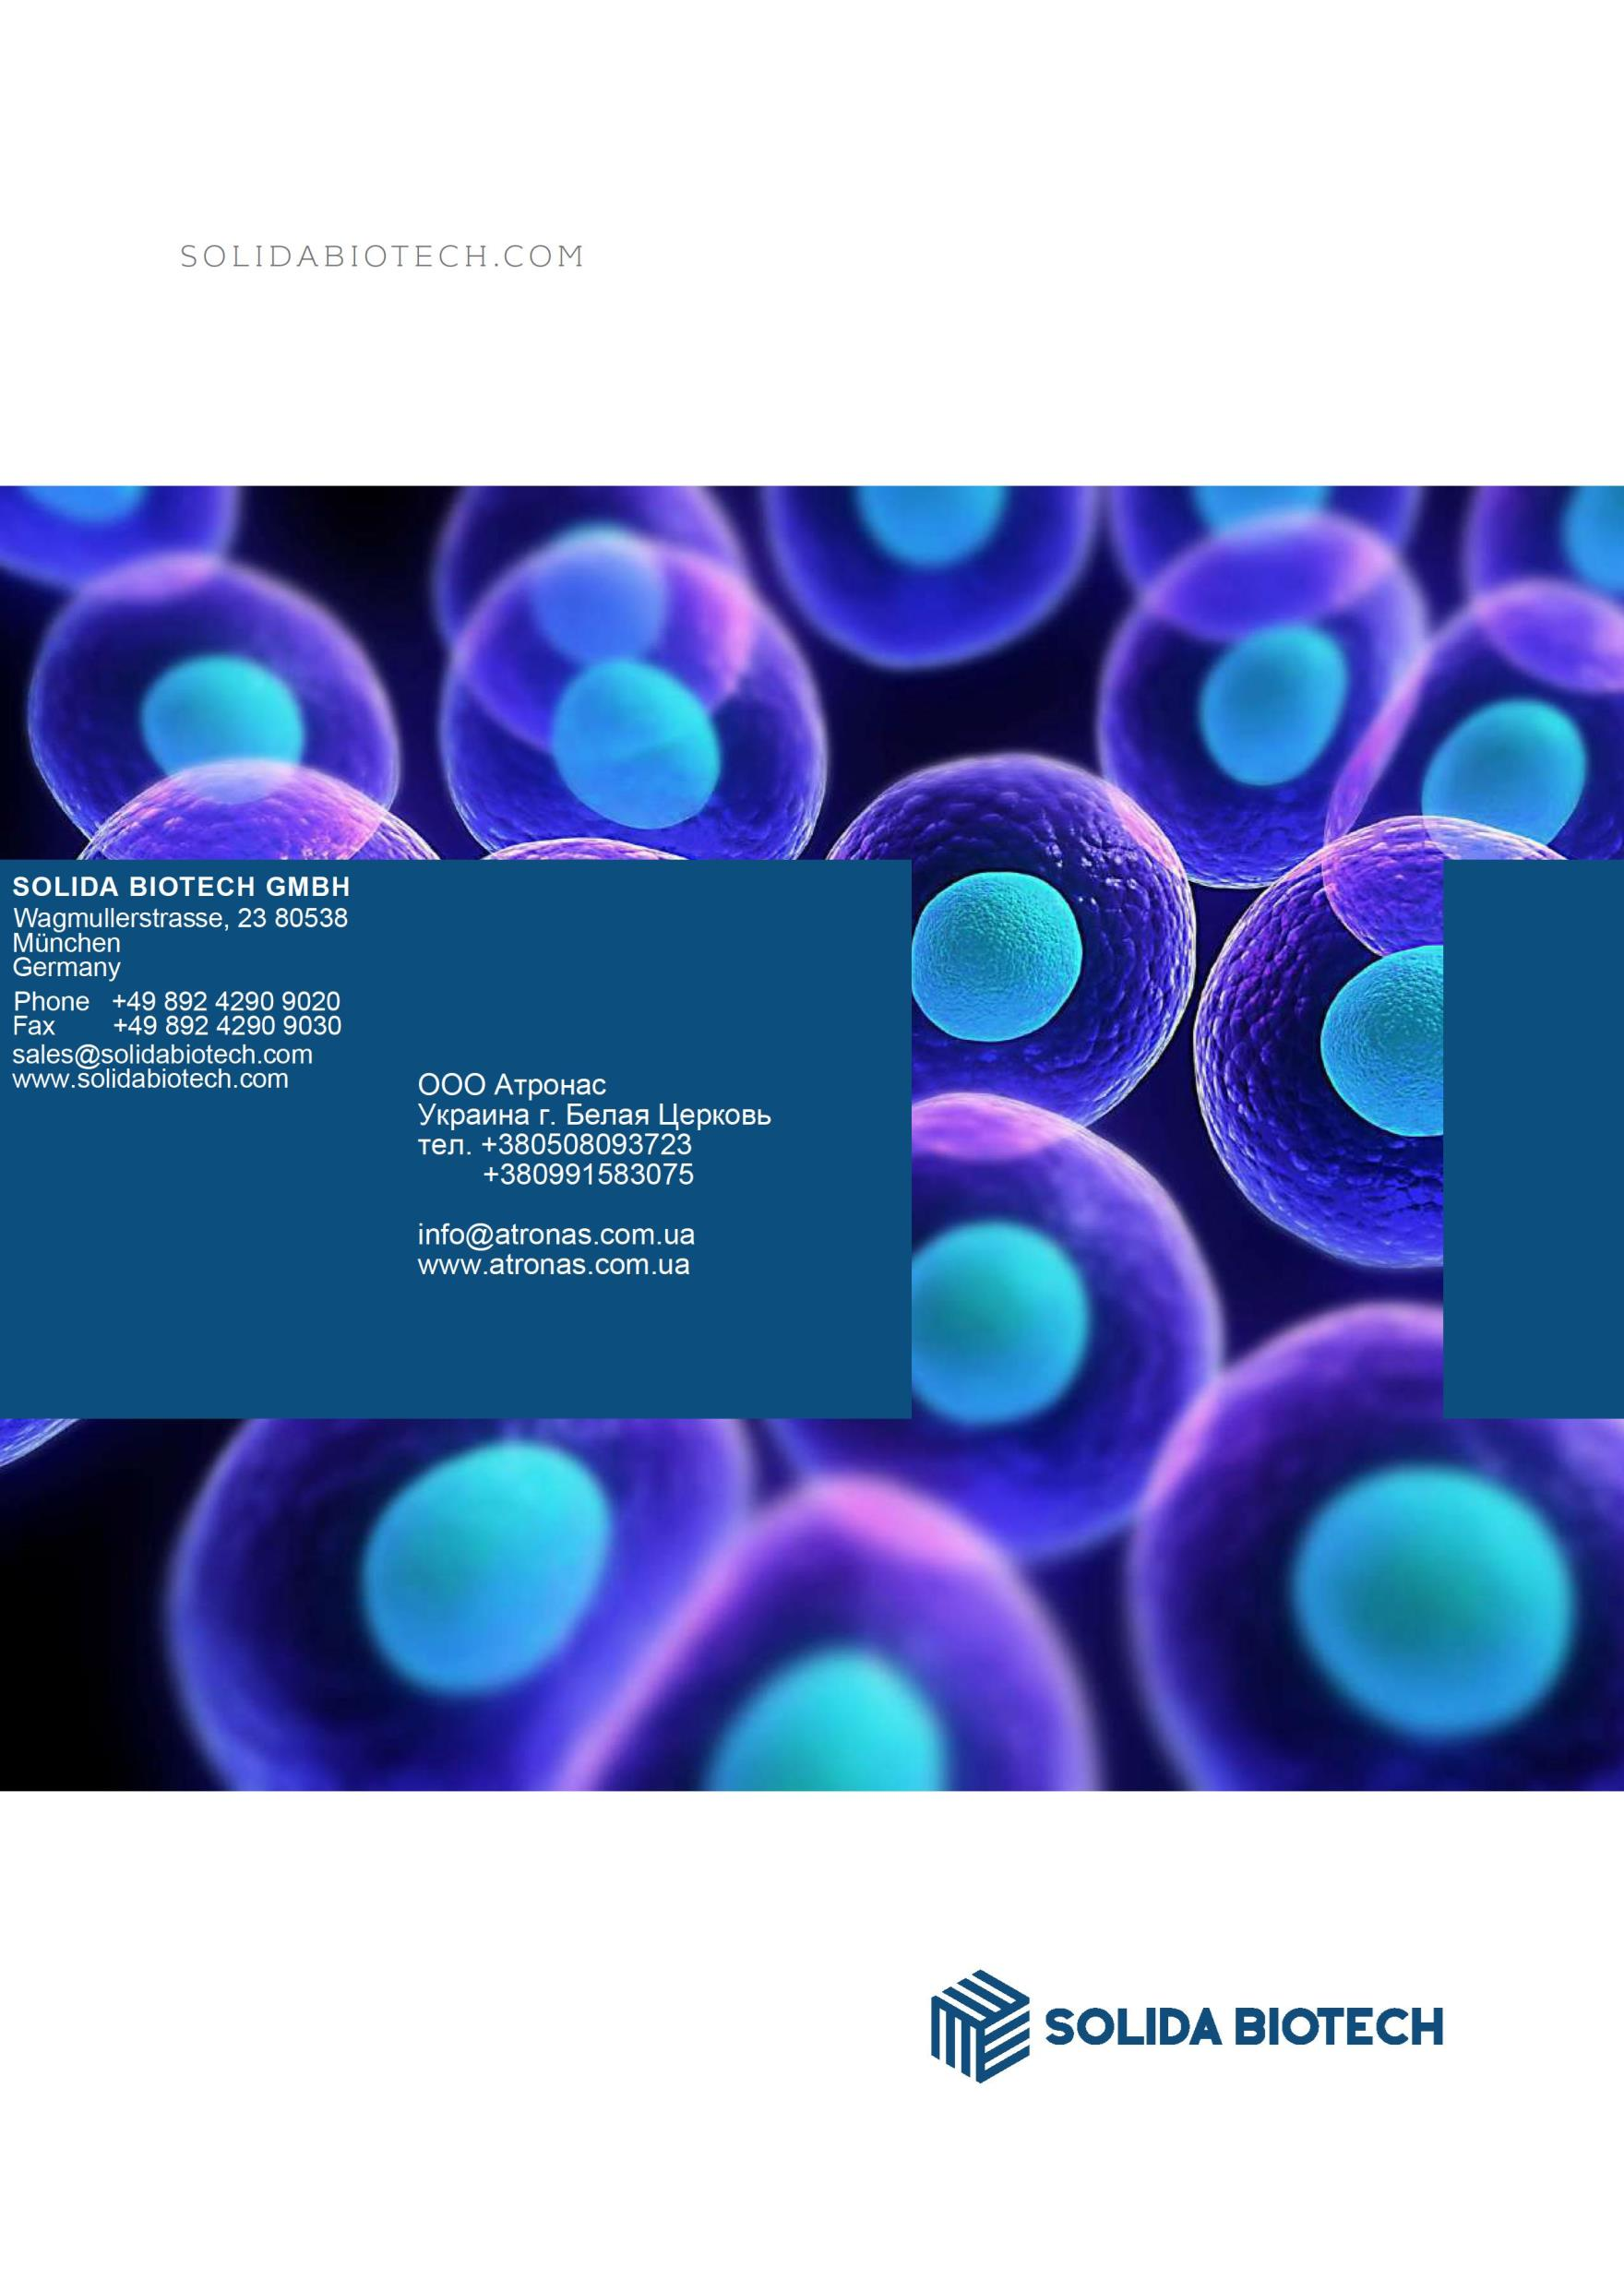 General Catalogue Solida Biotech GmBH2_compressed (2 - 0028